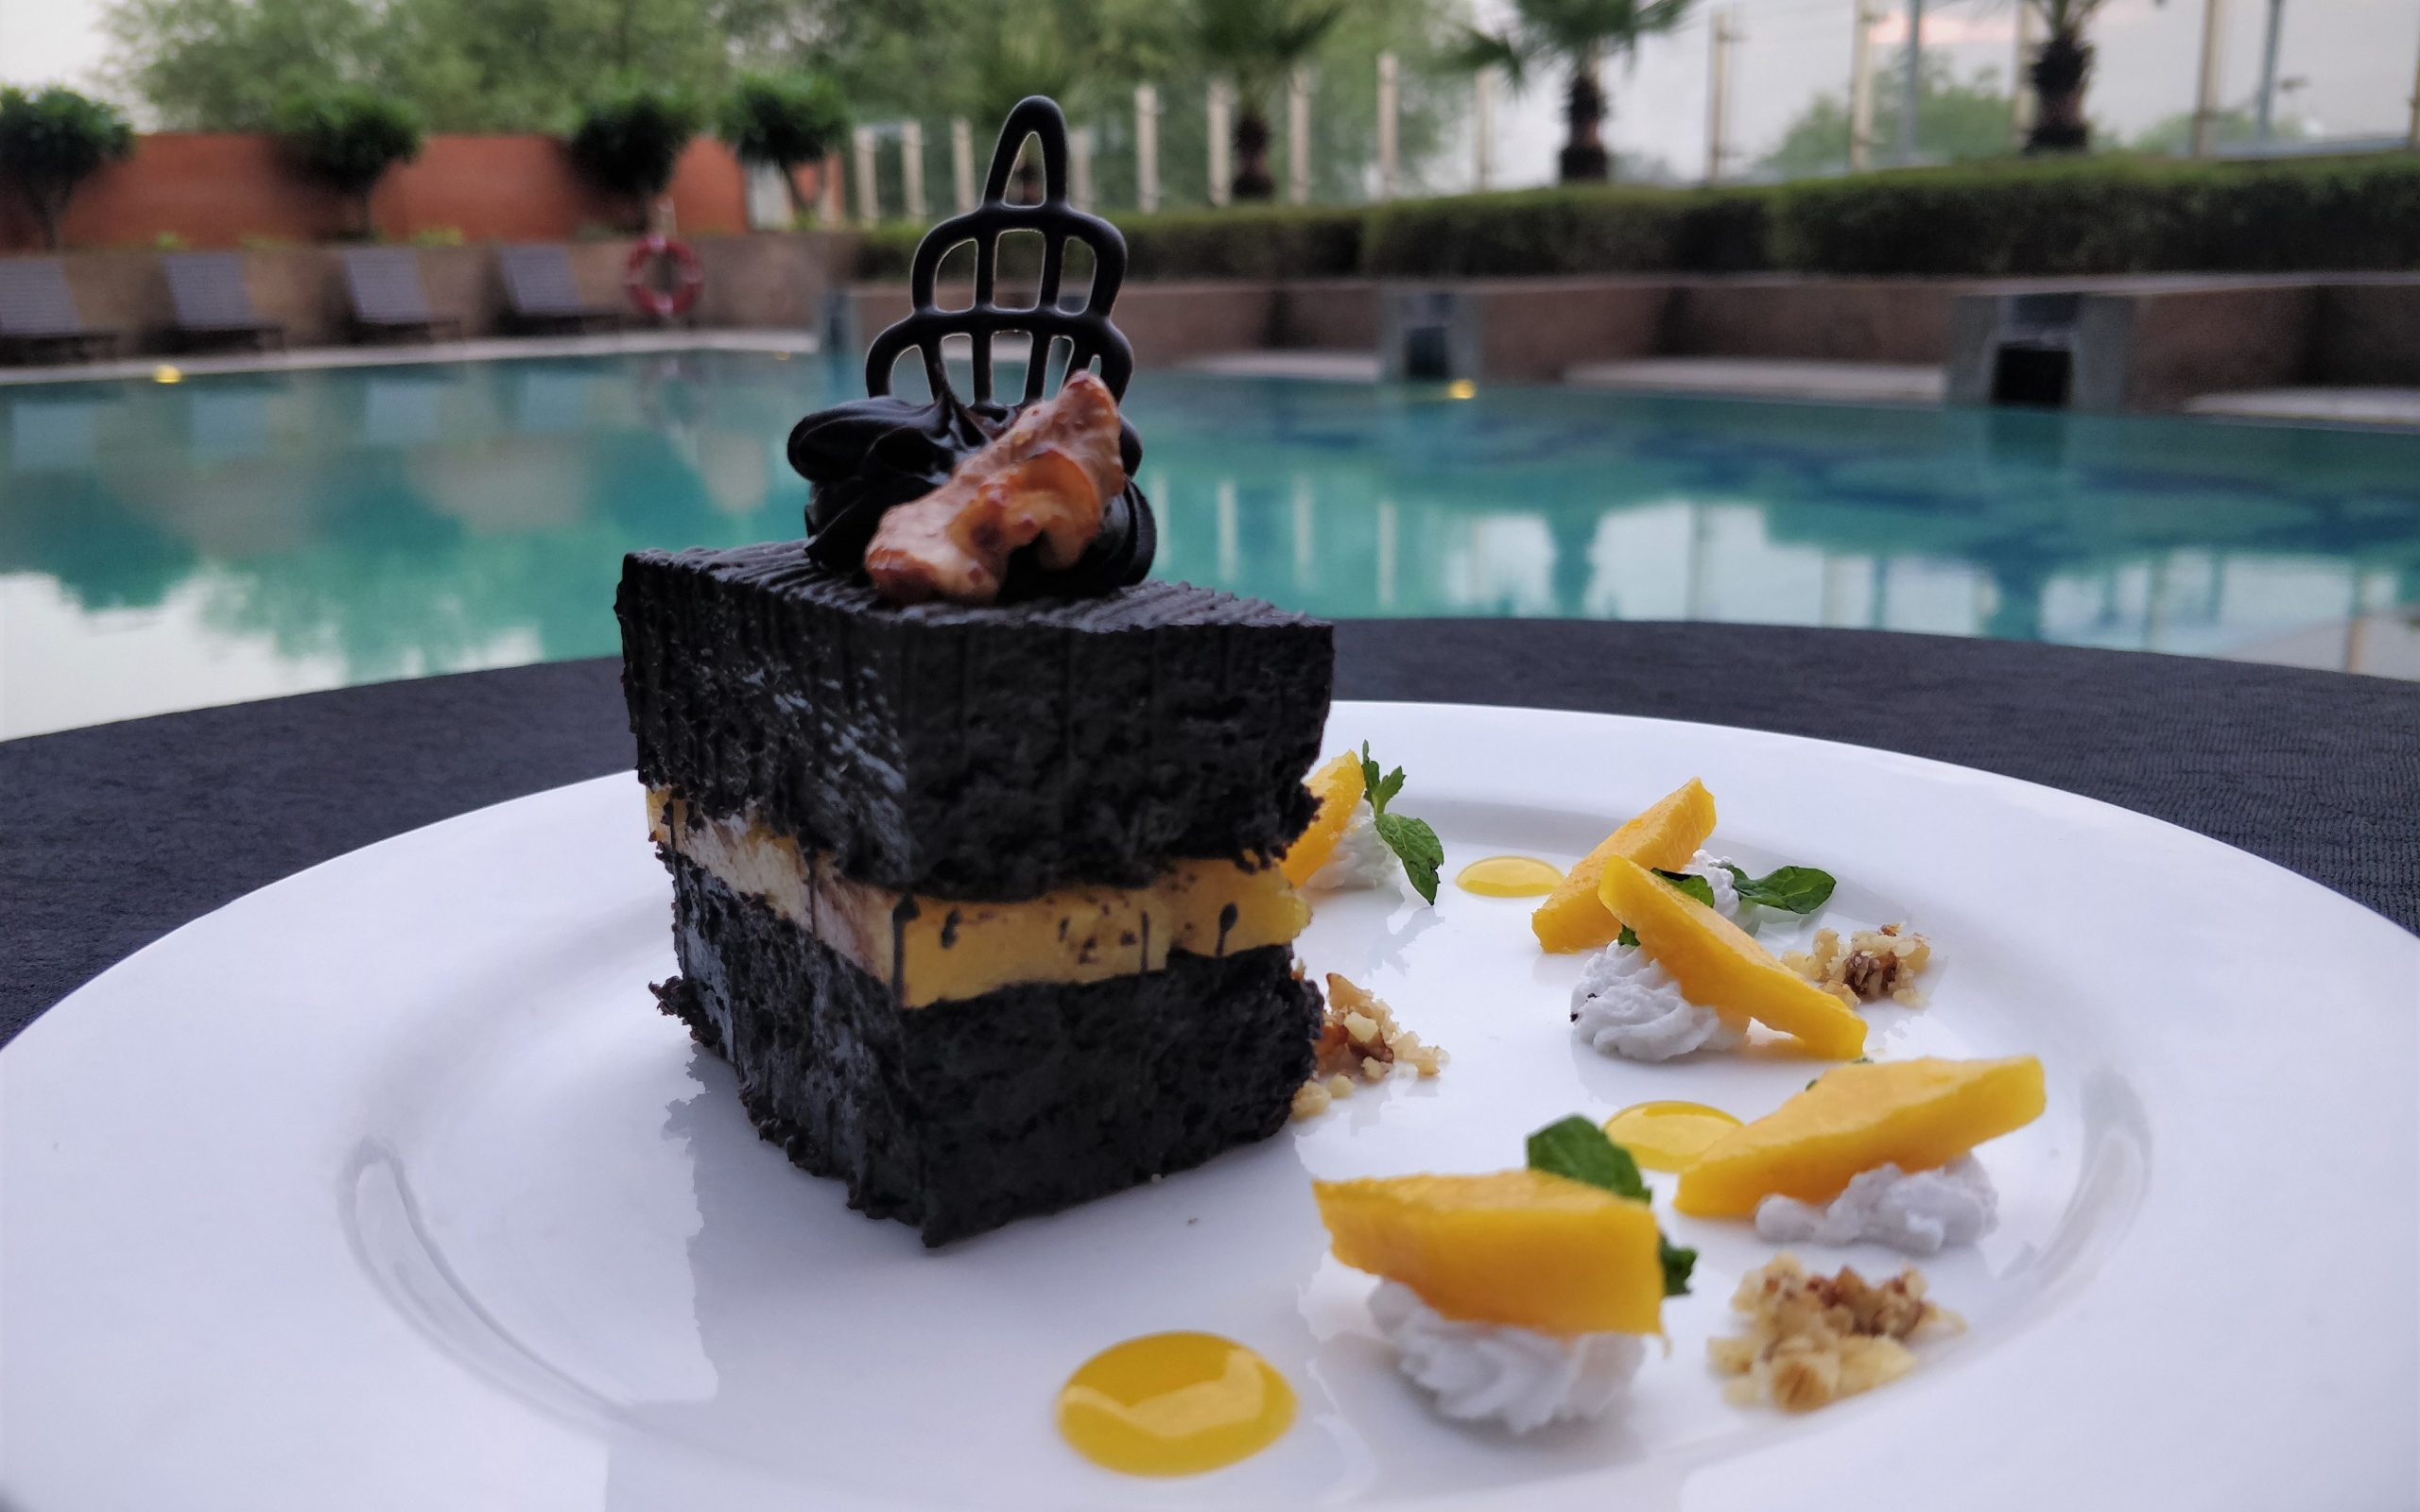 Favourite Choco Delight - Fresh Minted Mango and Chocolate Pave by Exec Chef Mohit Mishra, Vivanta Hyderabad, Begumpet